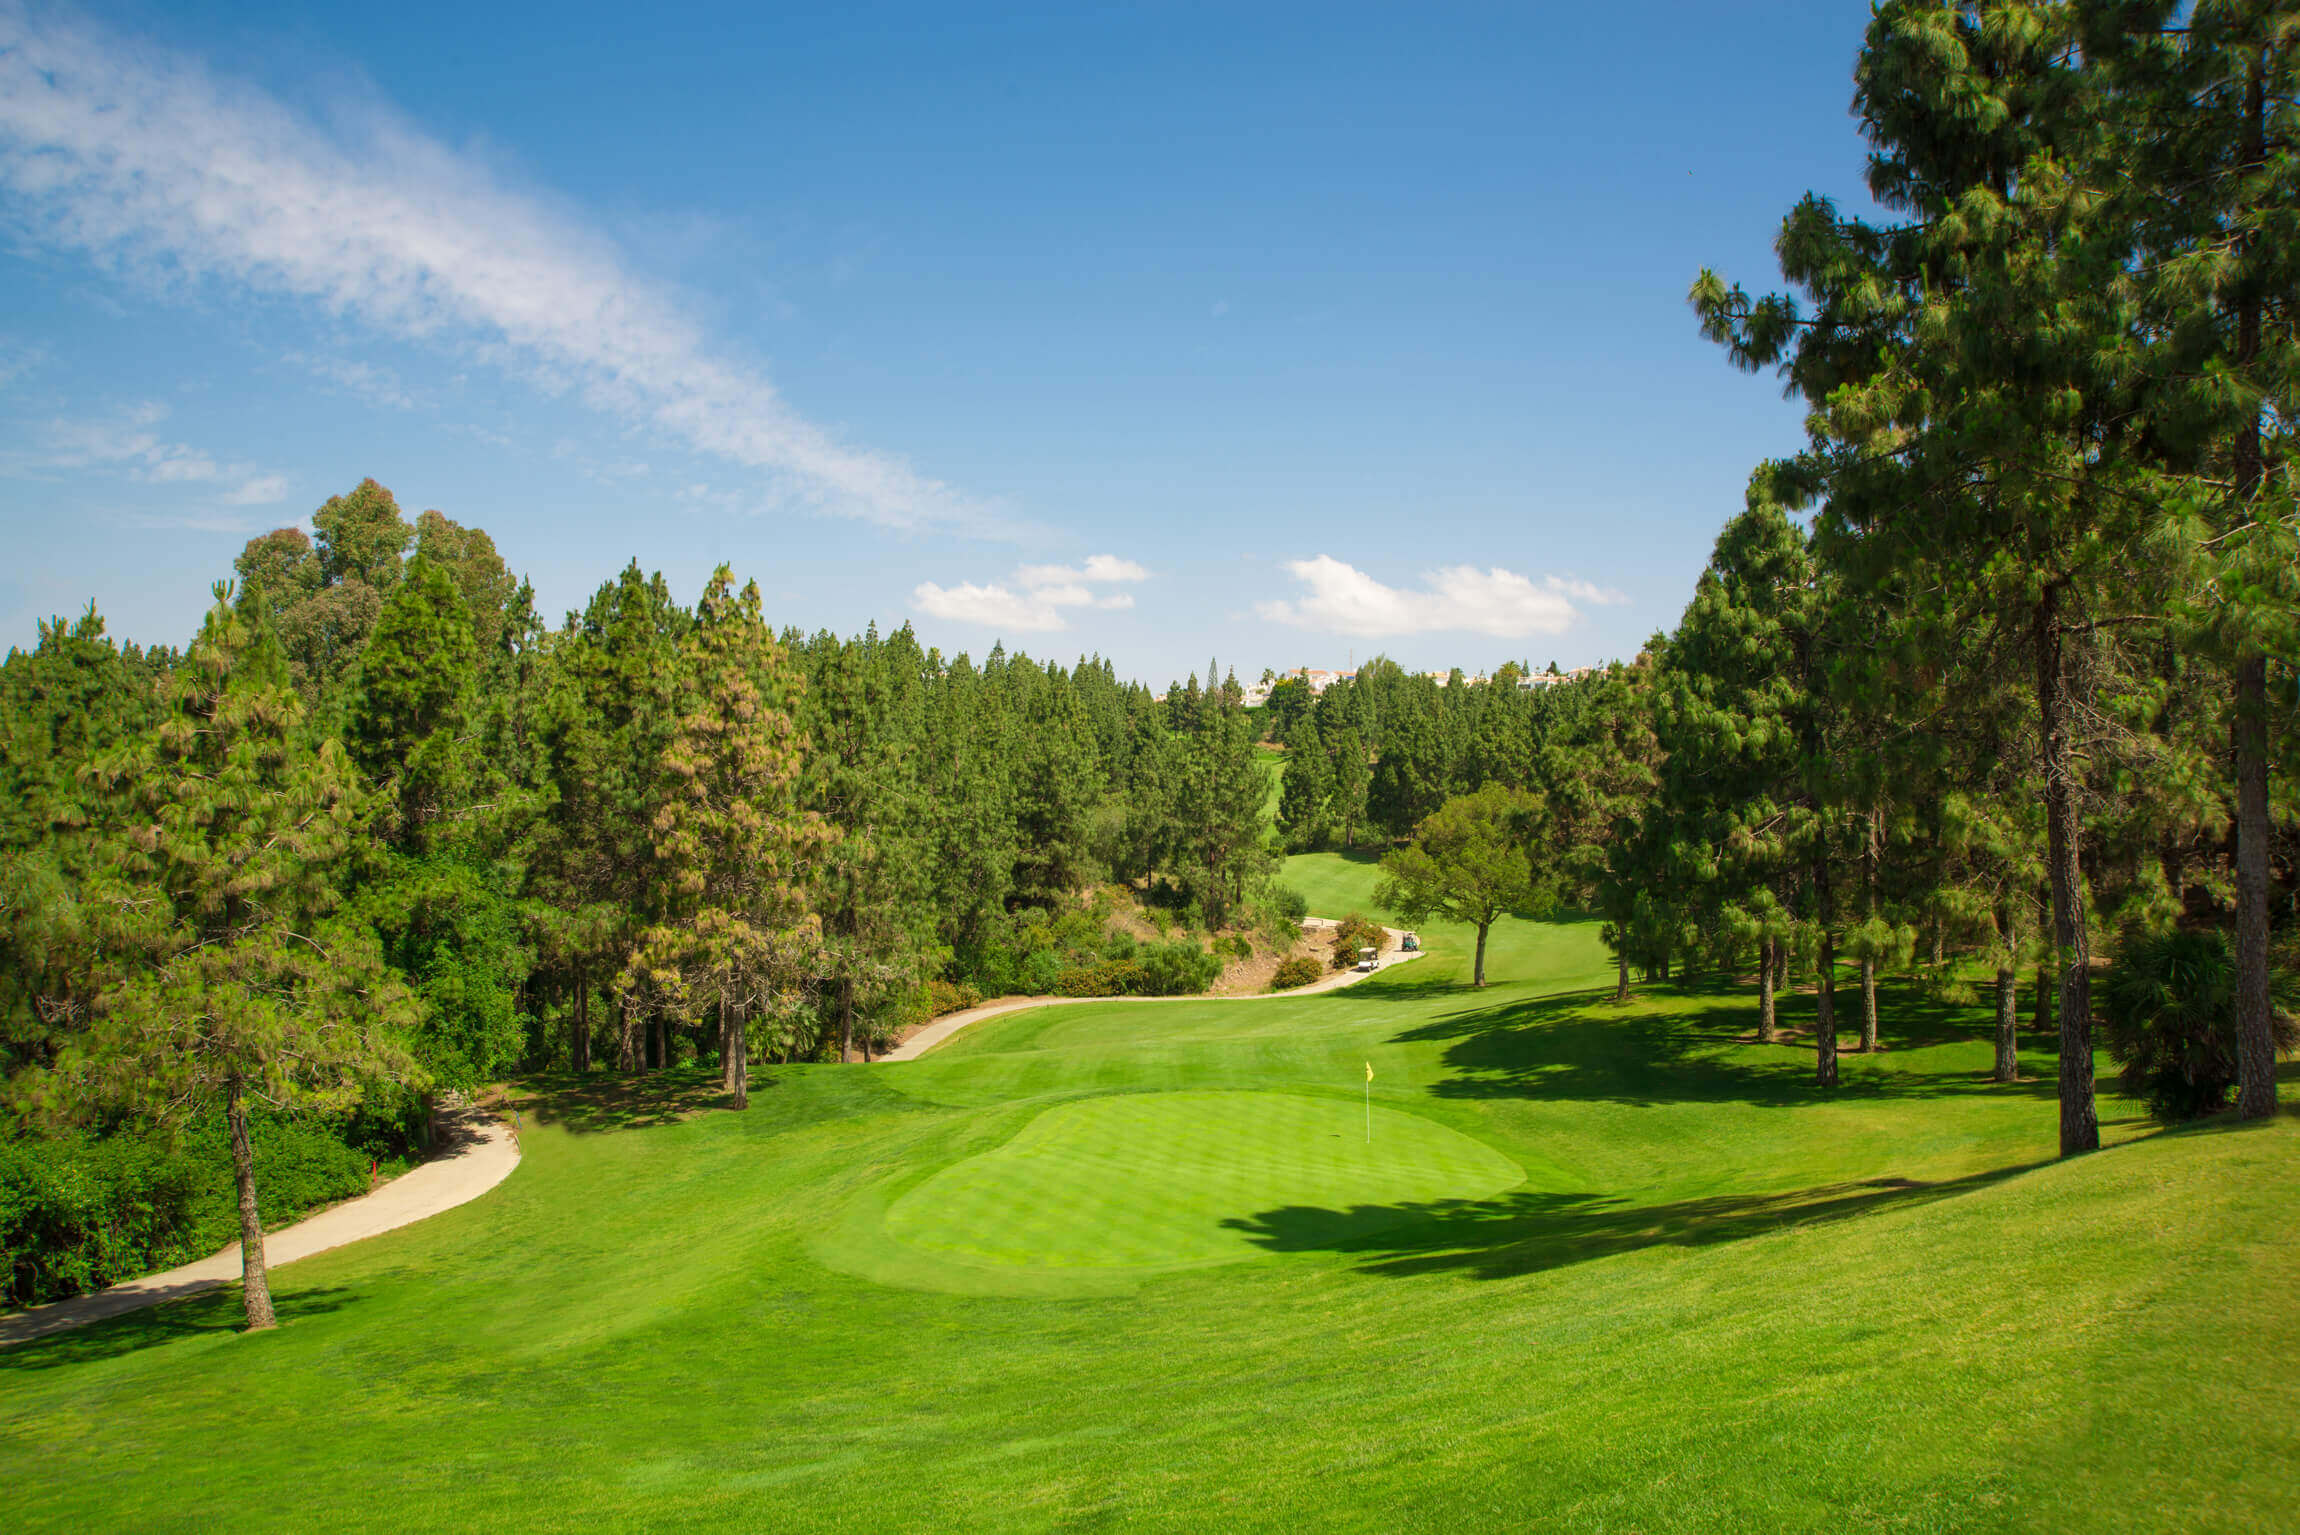 Chaparral Golf, Fuengirola